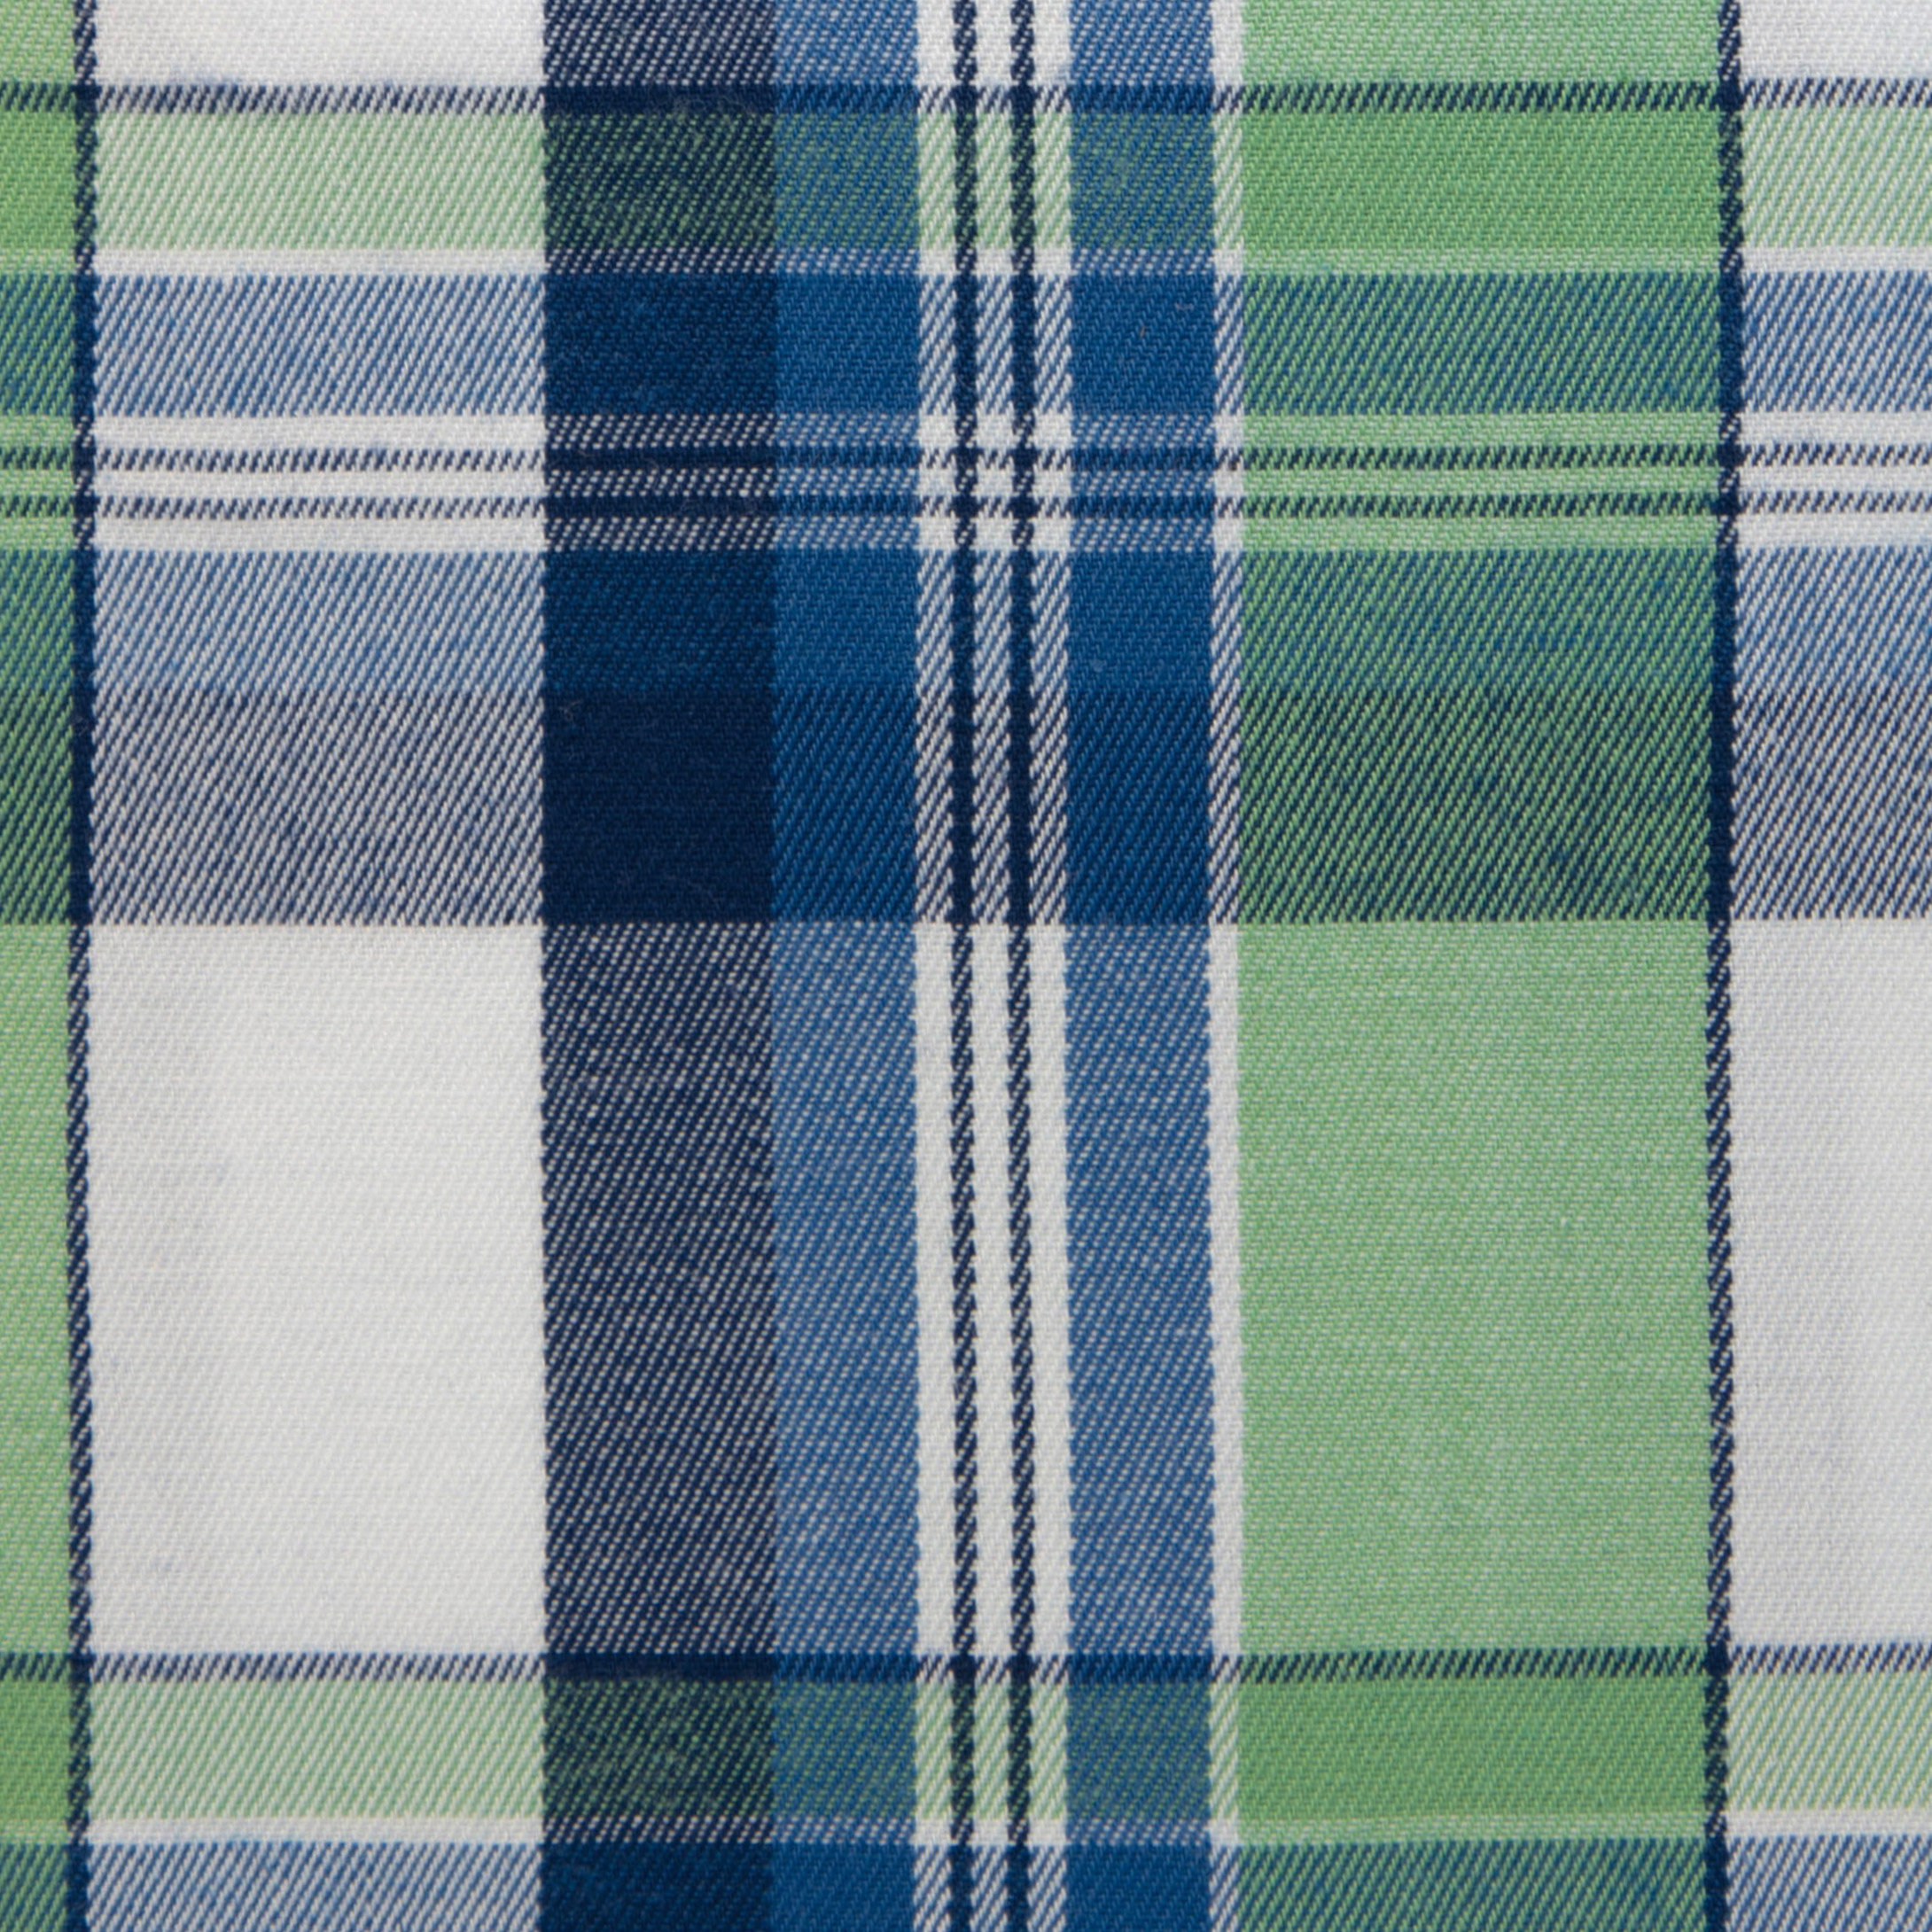 Buy tailor made shirts online - Texas Country Checks (CLEARANCE) - Green and Blue Check